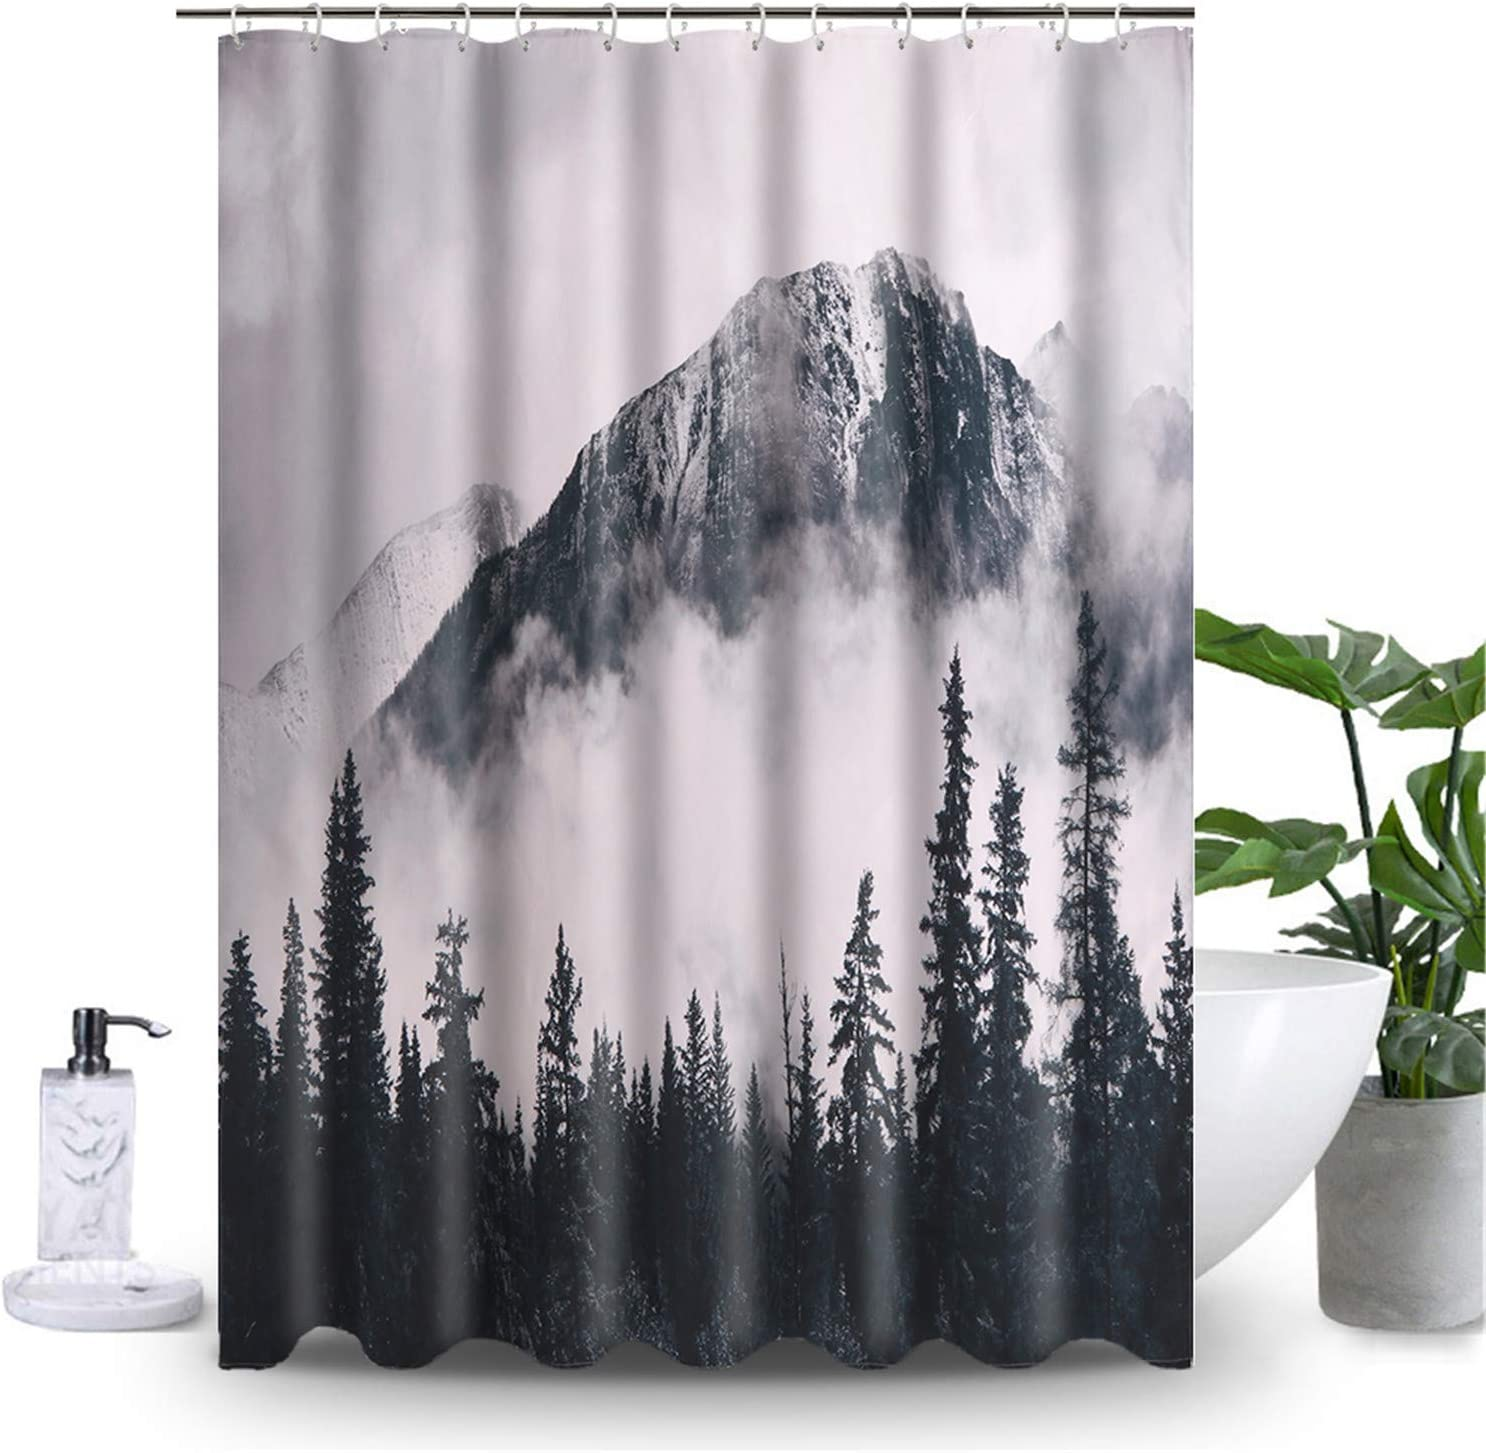 Uphome Foggy Forest Fabric Shower Curtain Nature Parks Canadian Smokey Mountain Cloth Shower Curtain Set with Hooks Misty Landscape Photo Bathroom Decor,Heavy Duty Waterproof, 72x72